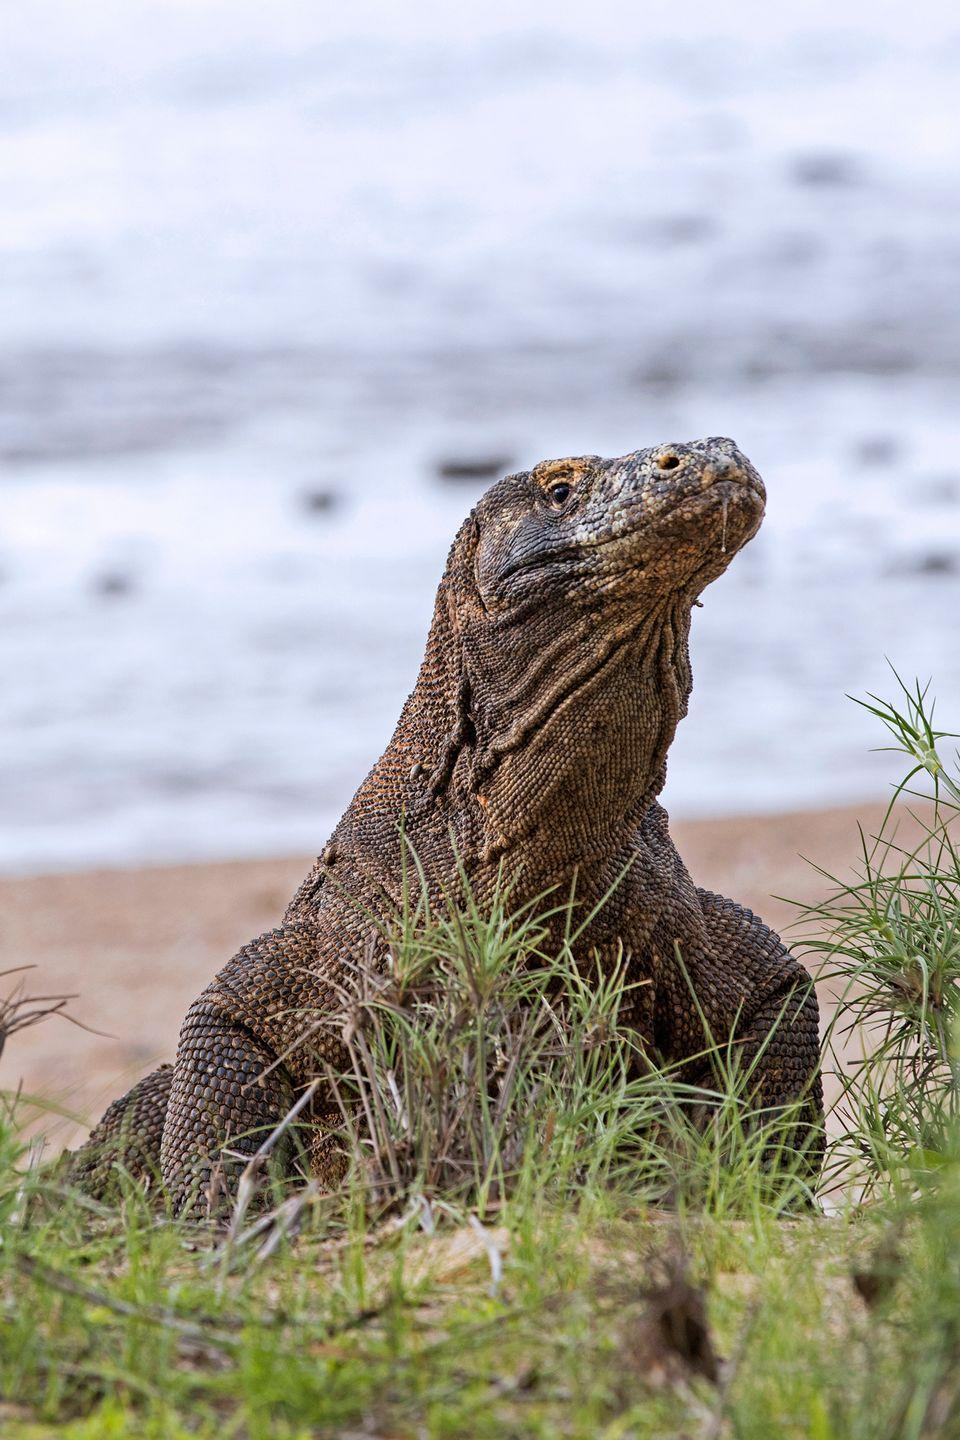 <p>Komodo dragons can grow up to 10 feet long and swell to around 150 pounds, which means they eat … a <em>lot</em>. Try up to 80 percent of their own body weight in a <em>single meal</em>. Their post meal-ritual? They regurgitate all of the indigestible parts (bone, hair, feathers, scales) into gastric pellets that smell awful.</p>